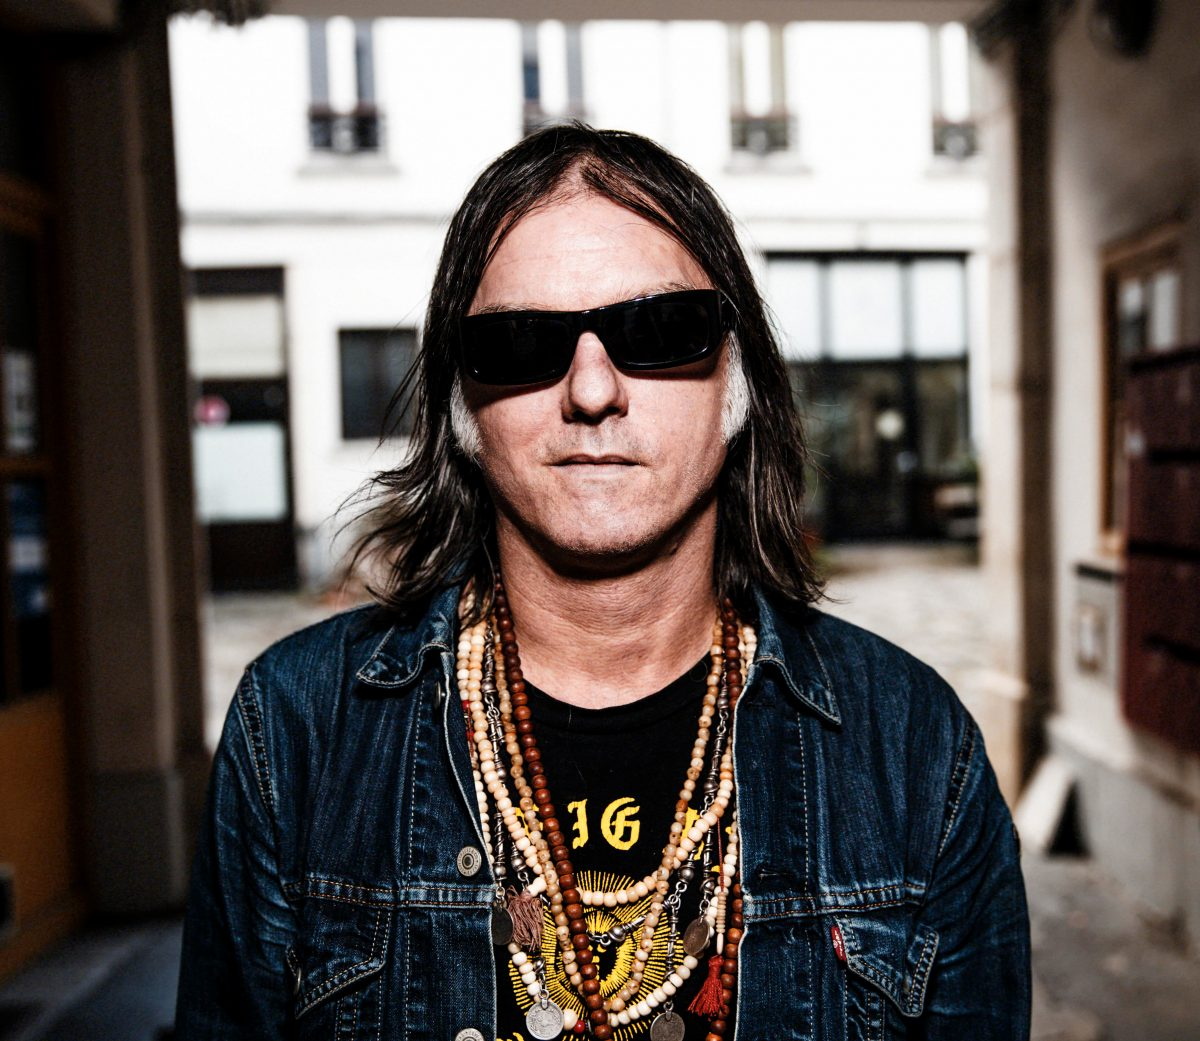 Anton Newcombe (photo credit: Thomas Girard)